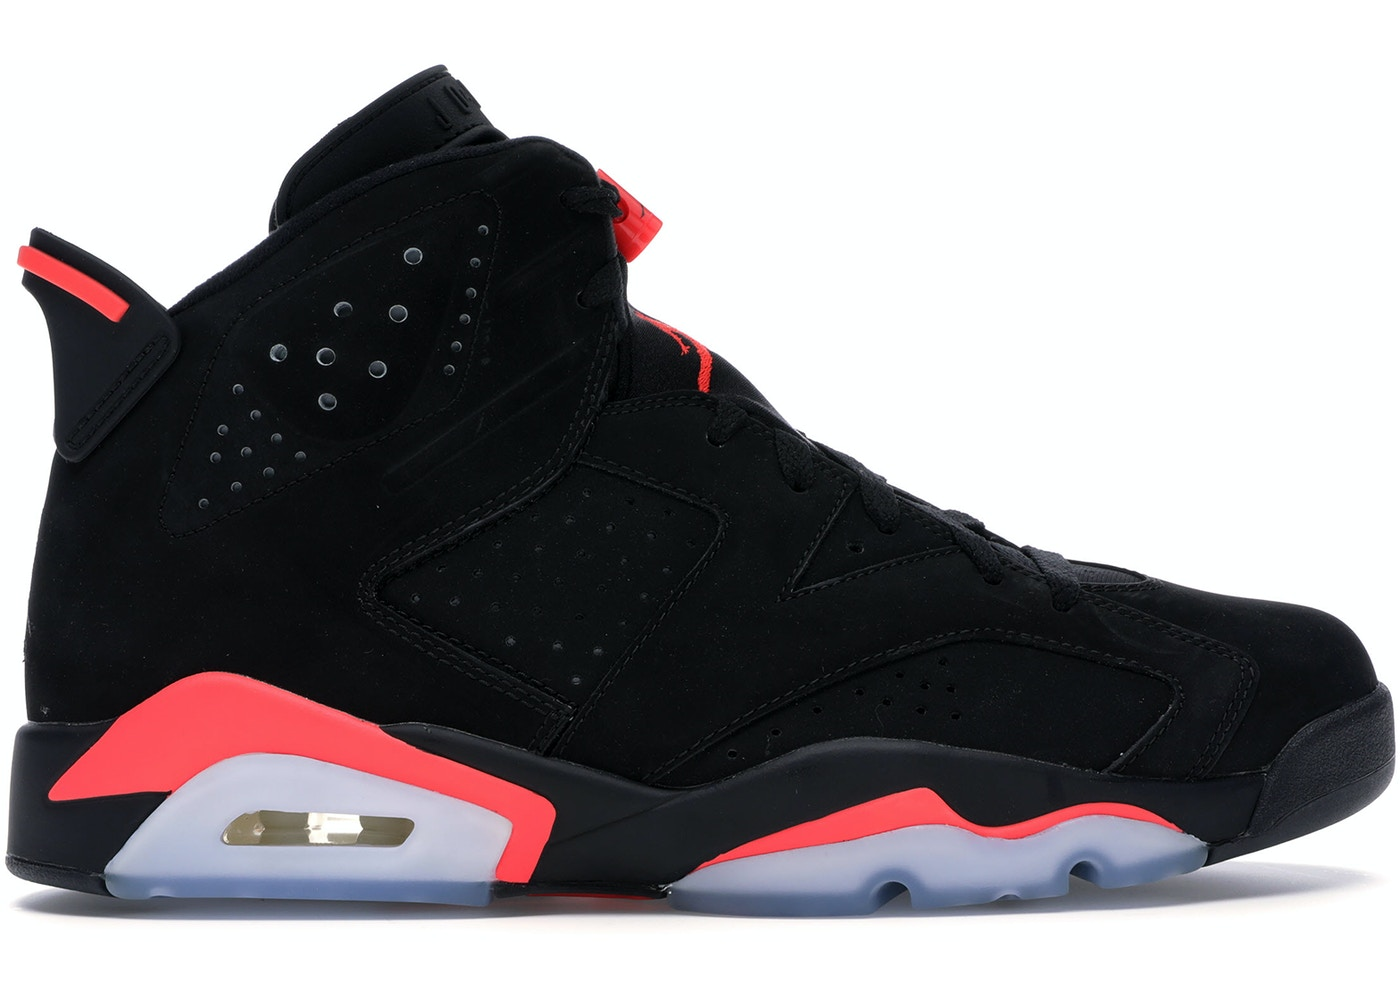 67526a7b0af6b8 Jordan 6 Retro Infrared Black (2014) - 384664-023